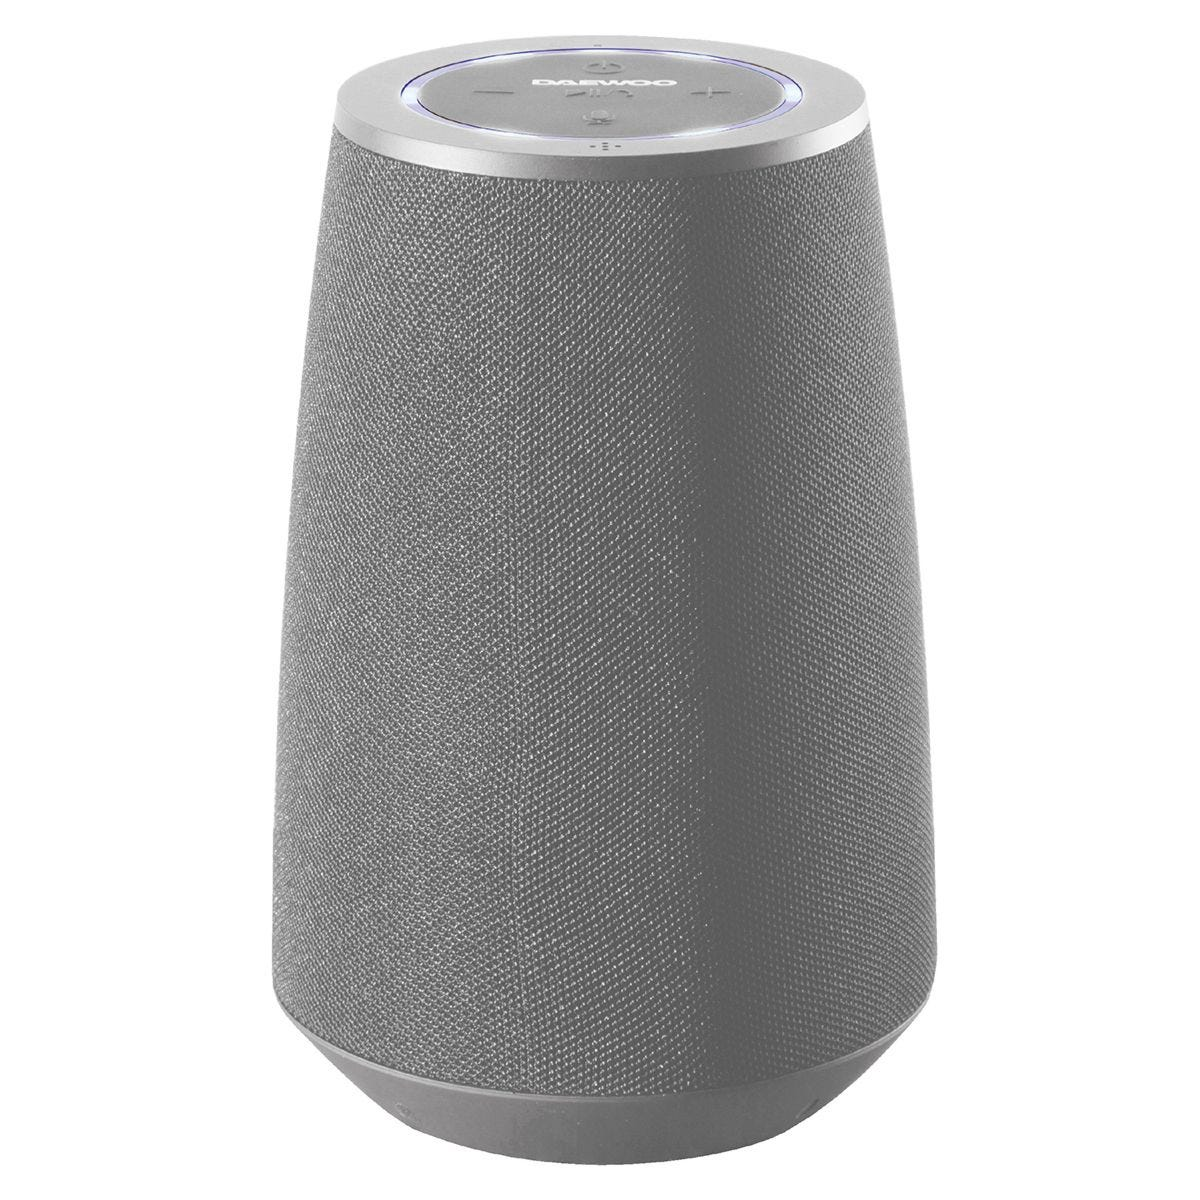 Daewoo Bluetooth Fabric Speaker with Voice Assistant Plus - Grey